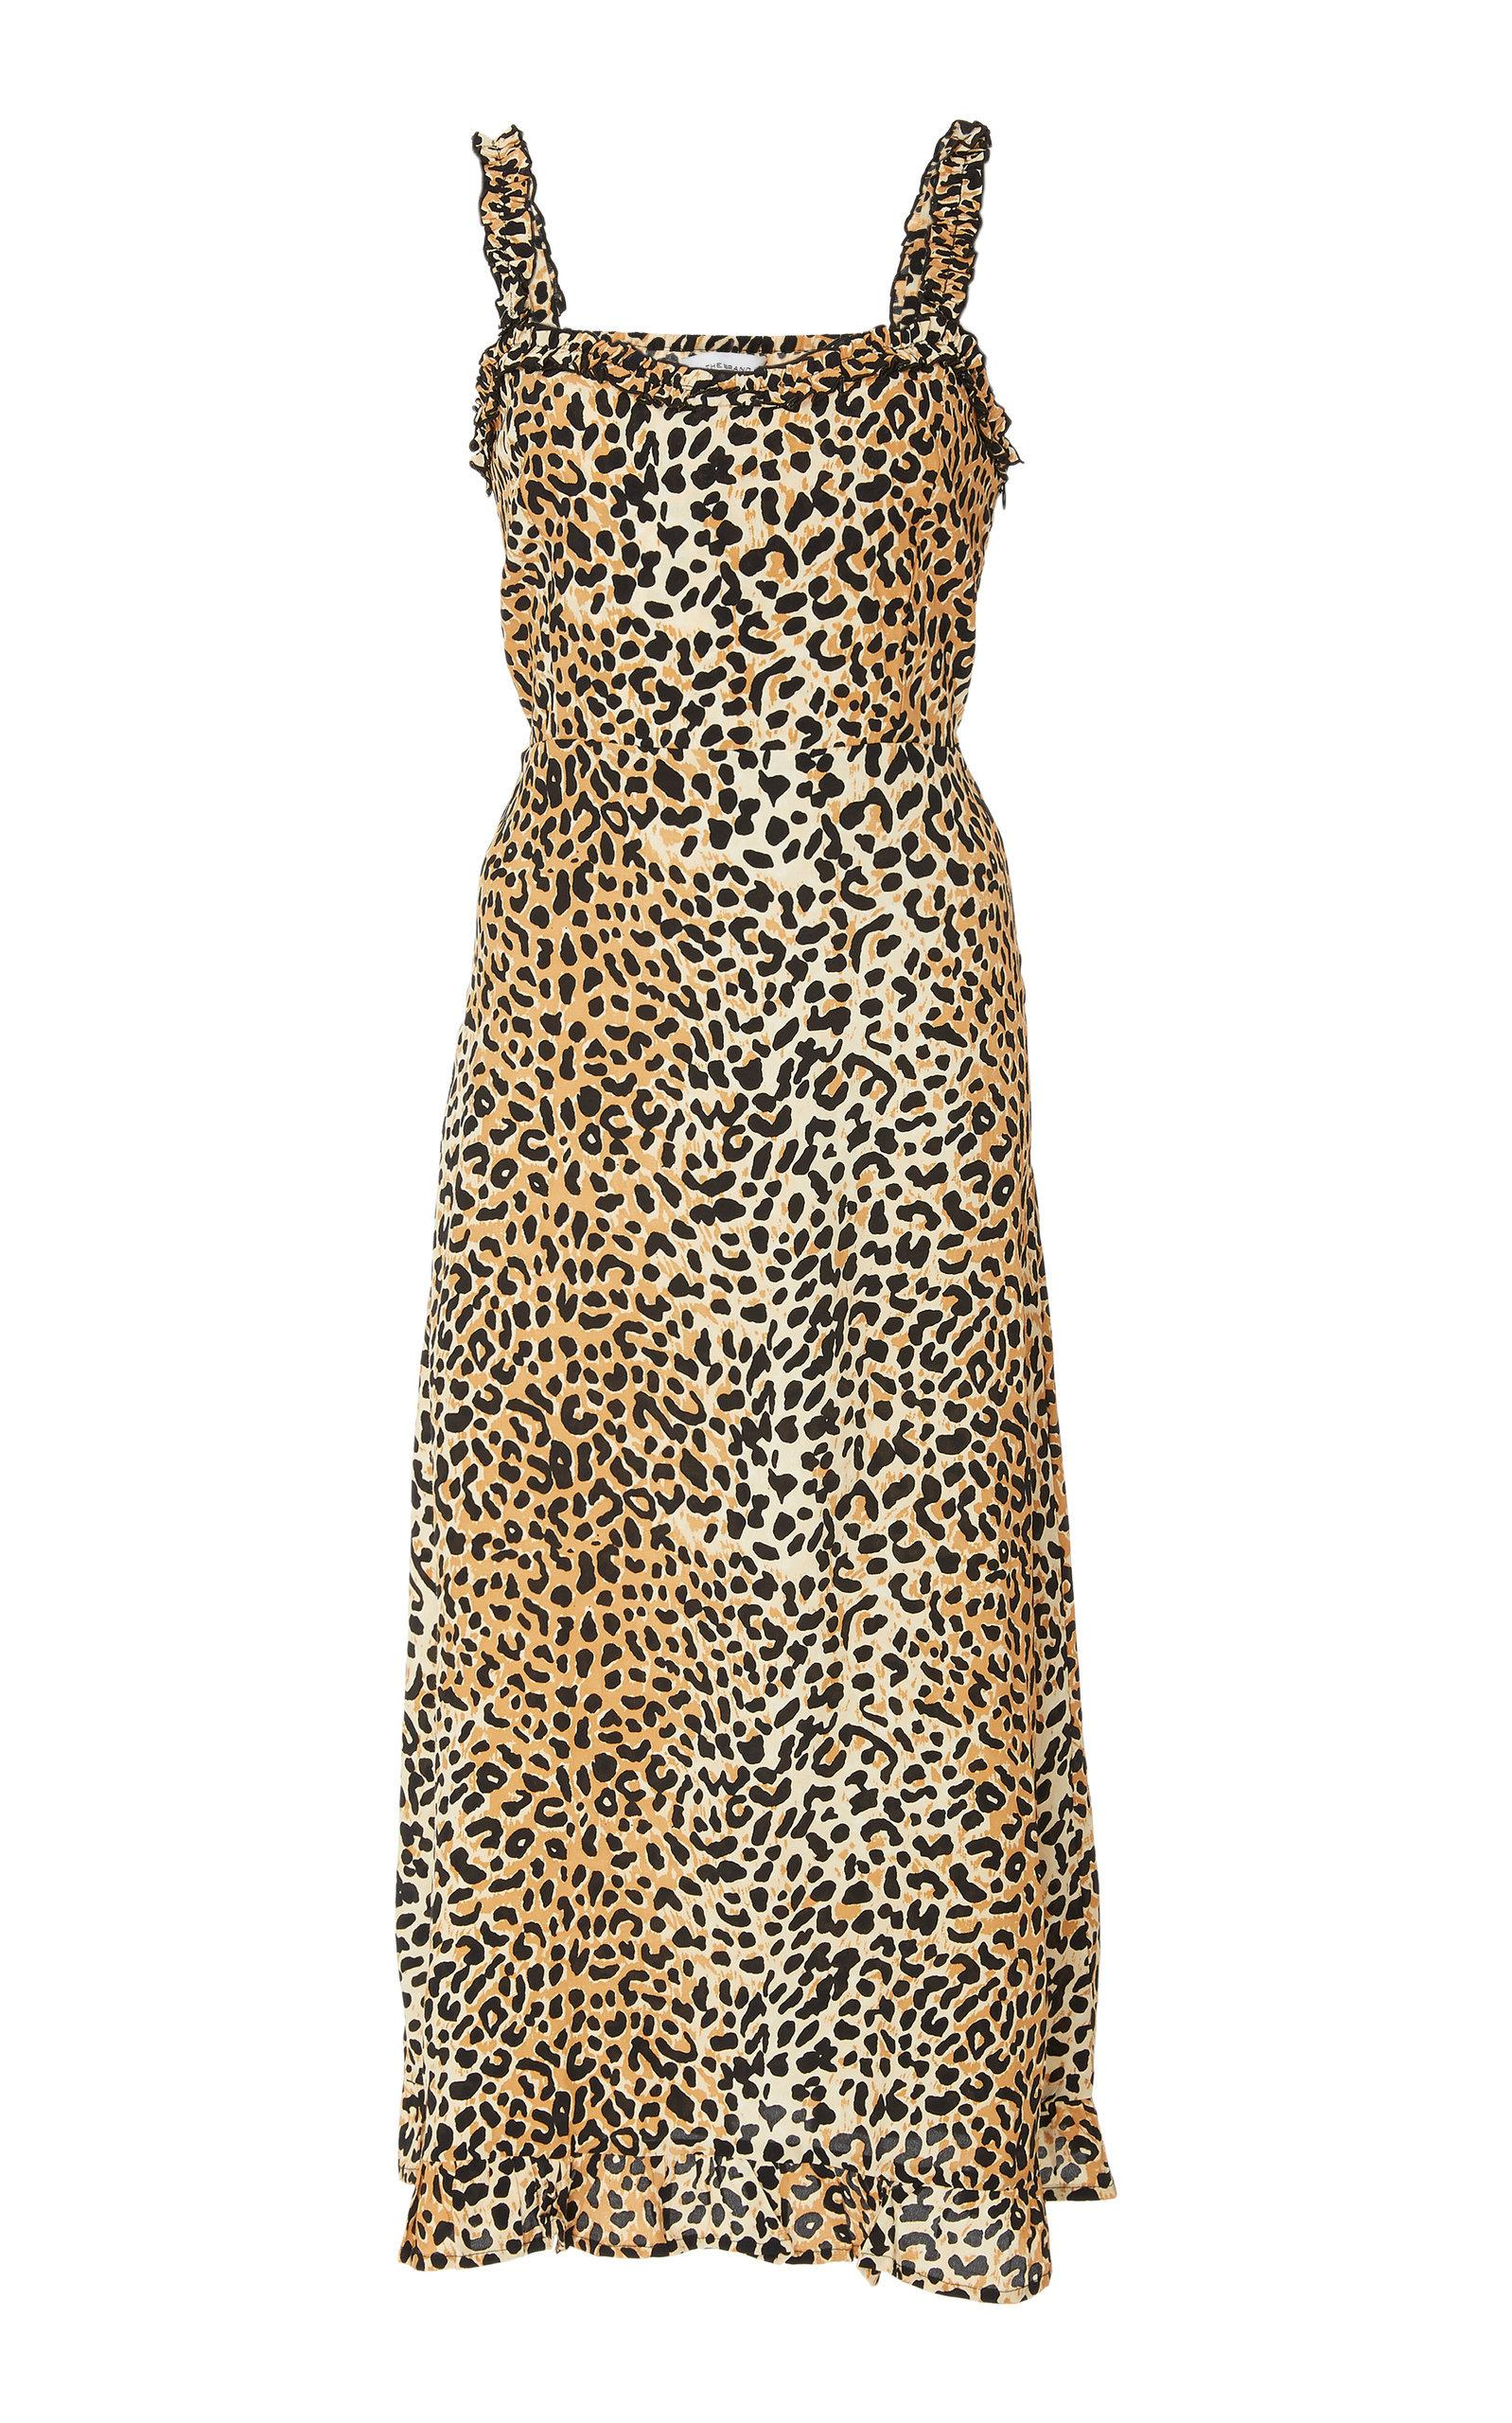 Faithfull Noemie Sleeveless Midi Dress In Animal